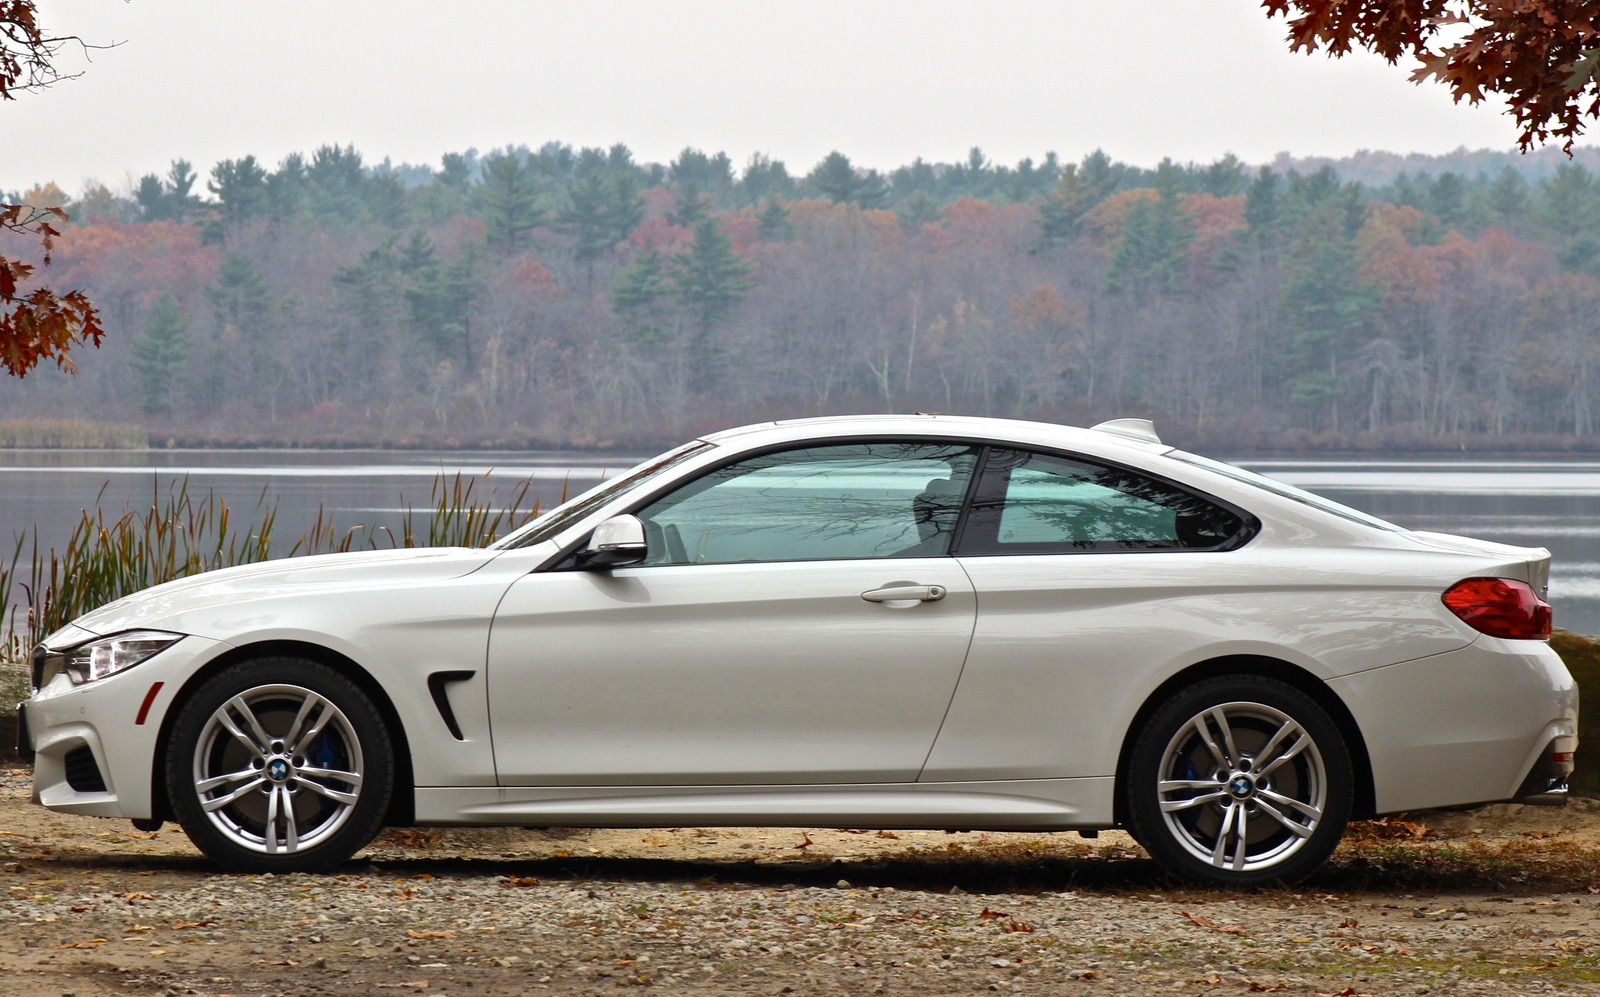 2014 BMW 4 Series, 2014 BMW 428i side shot, safety, exterior